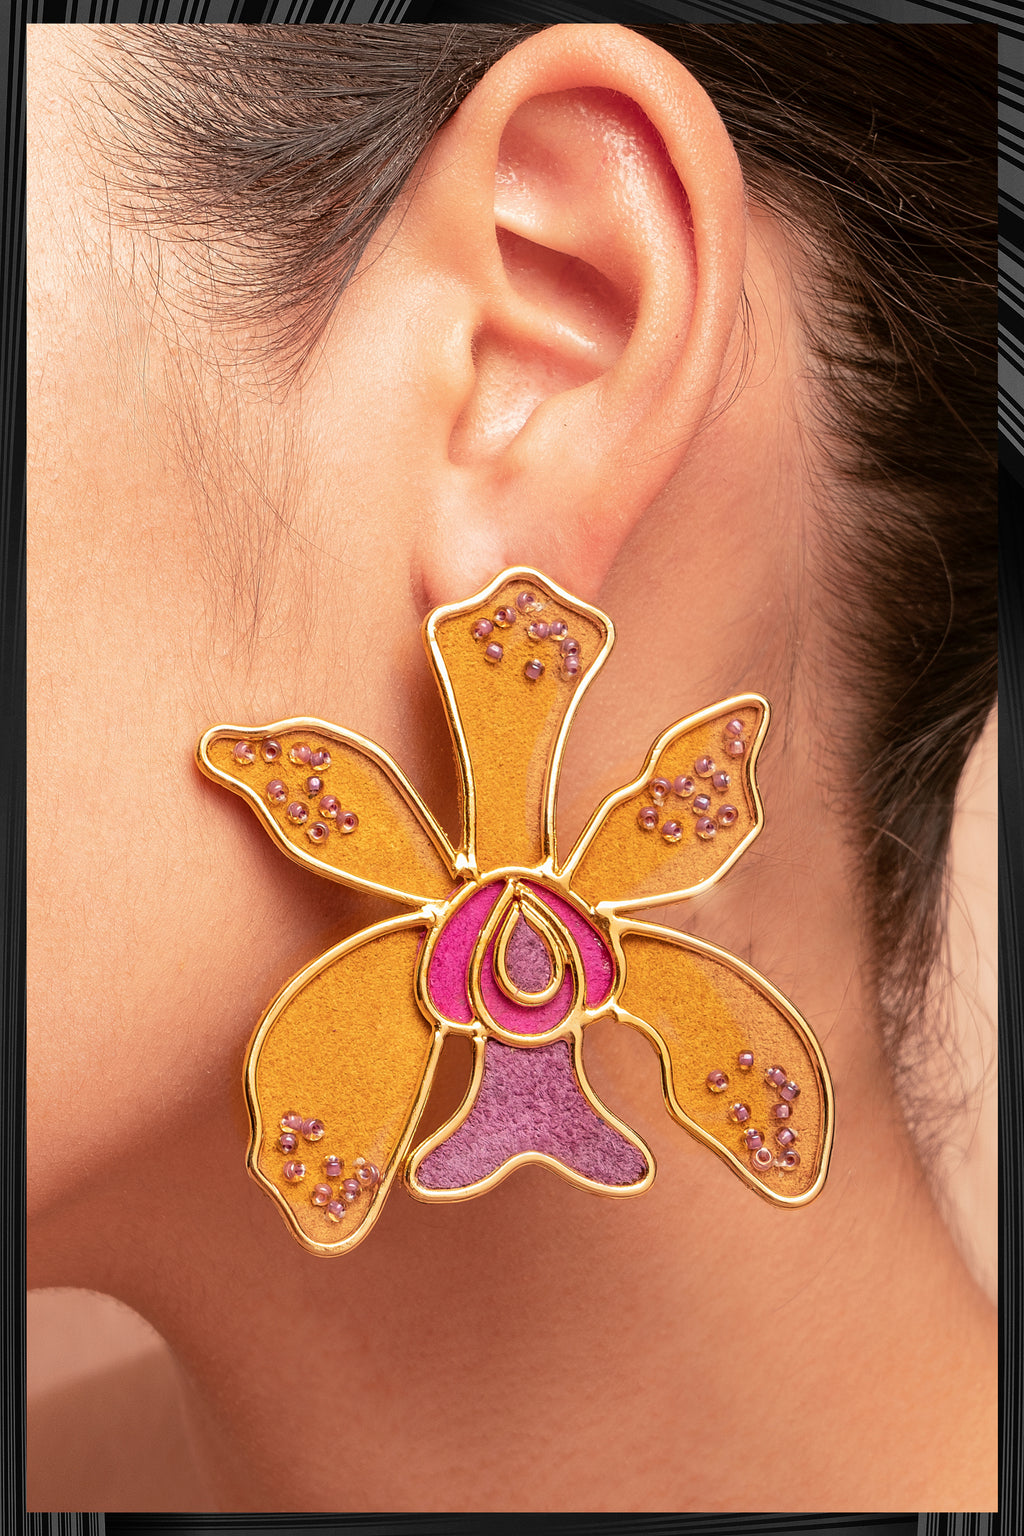 Golden Ocidium Orchid Earrings | Free Delivery - 3 Week Shipping